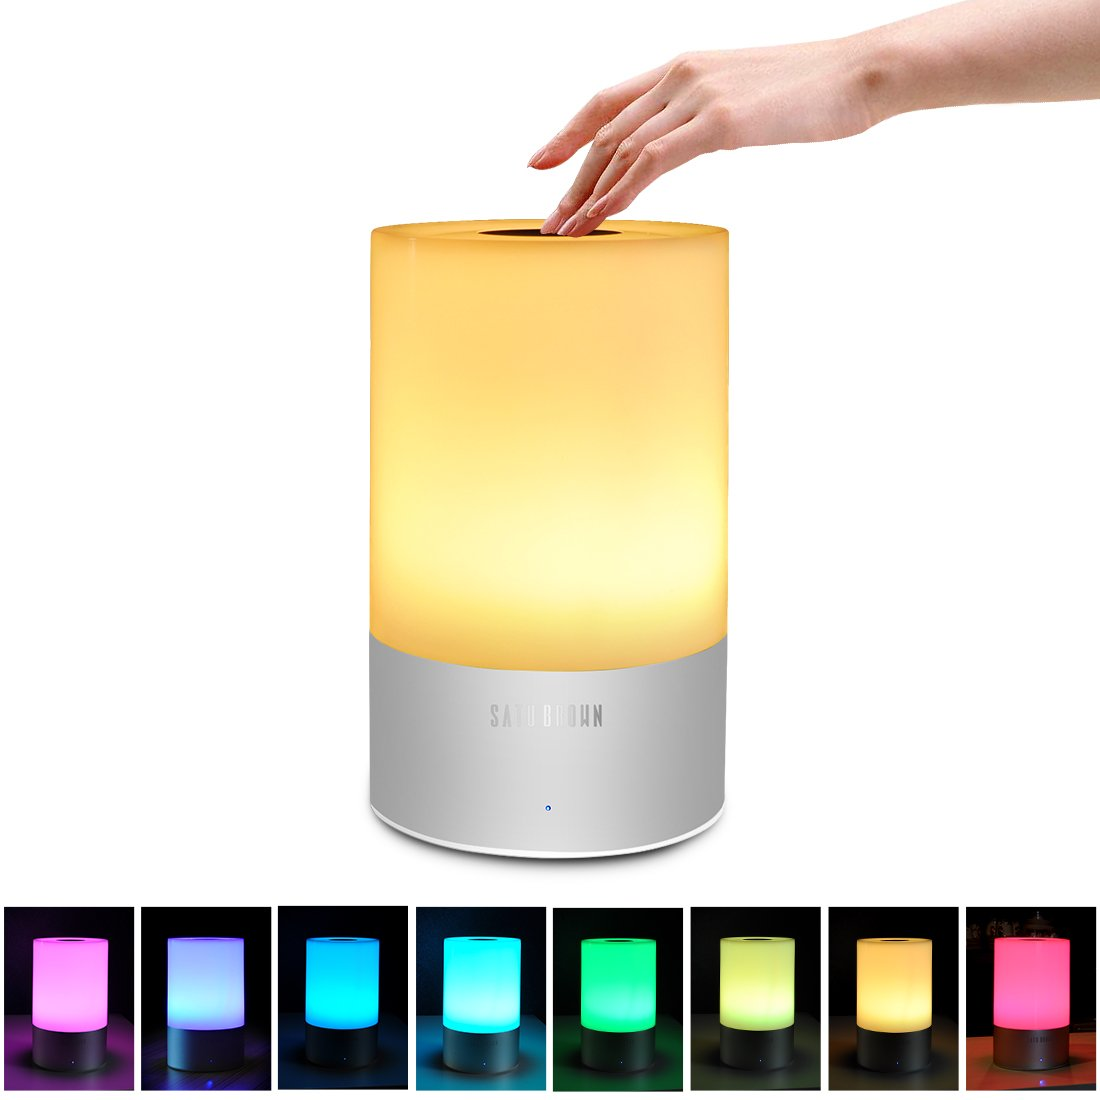 Touch Sensor Bedside Lamp, Satu Brown Smart LED Table Lamp Night Light Desk Lamps Portable Atmosphere Lighting, Dimmable Warm White Lights and Color Changing RGB